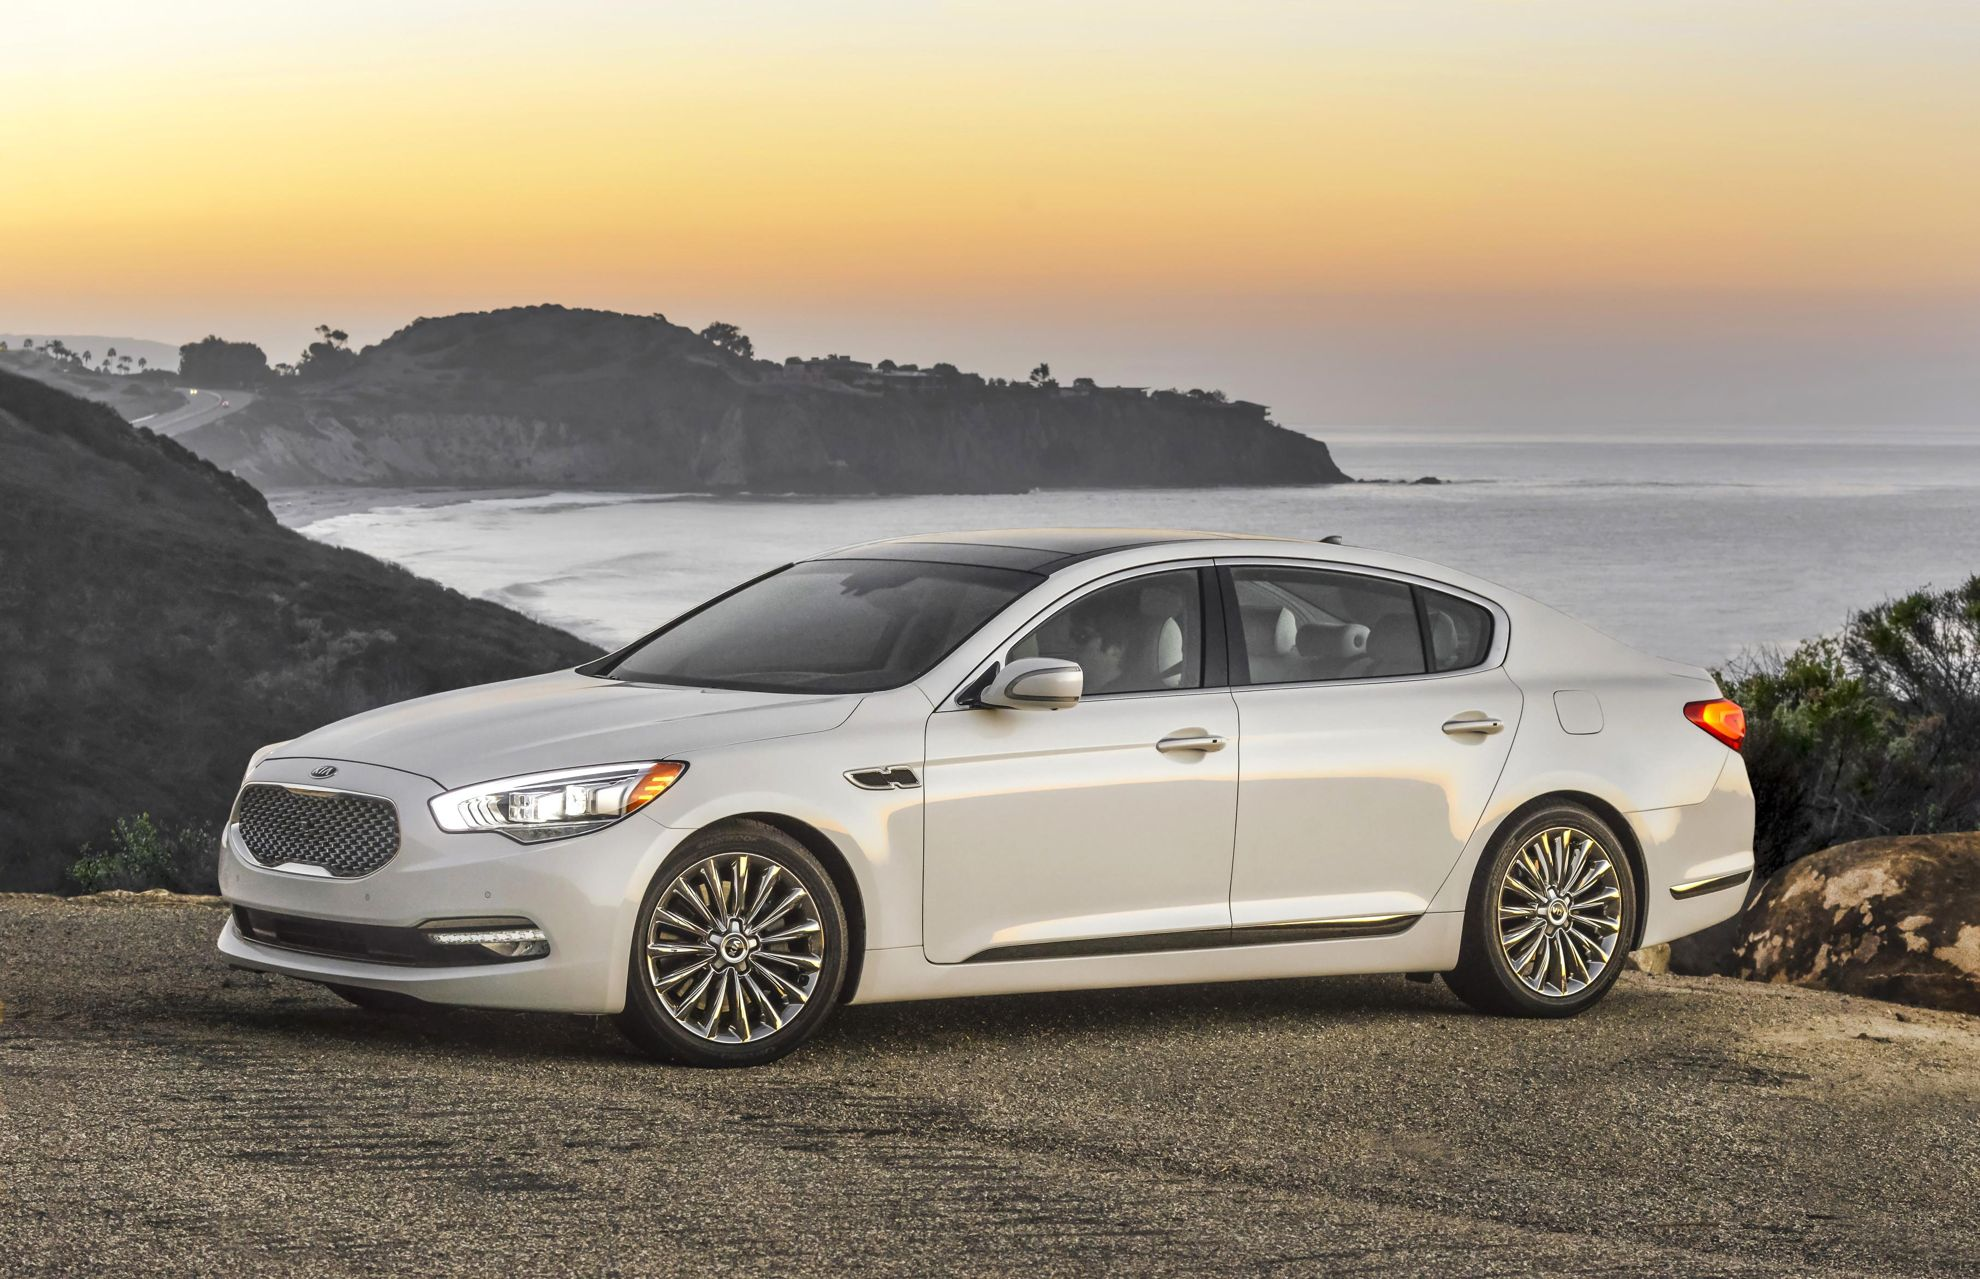 Modern and Elegant, the K900 Signals a New Era for Kia and Advances